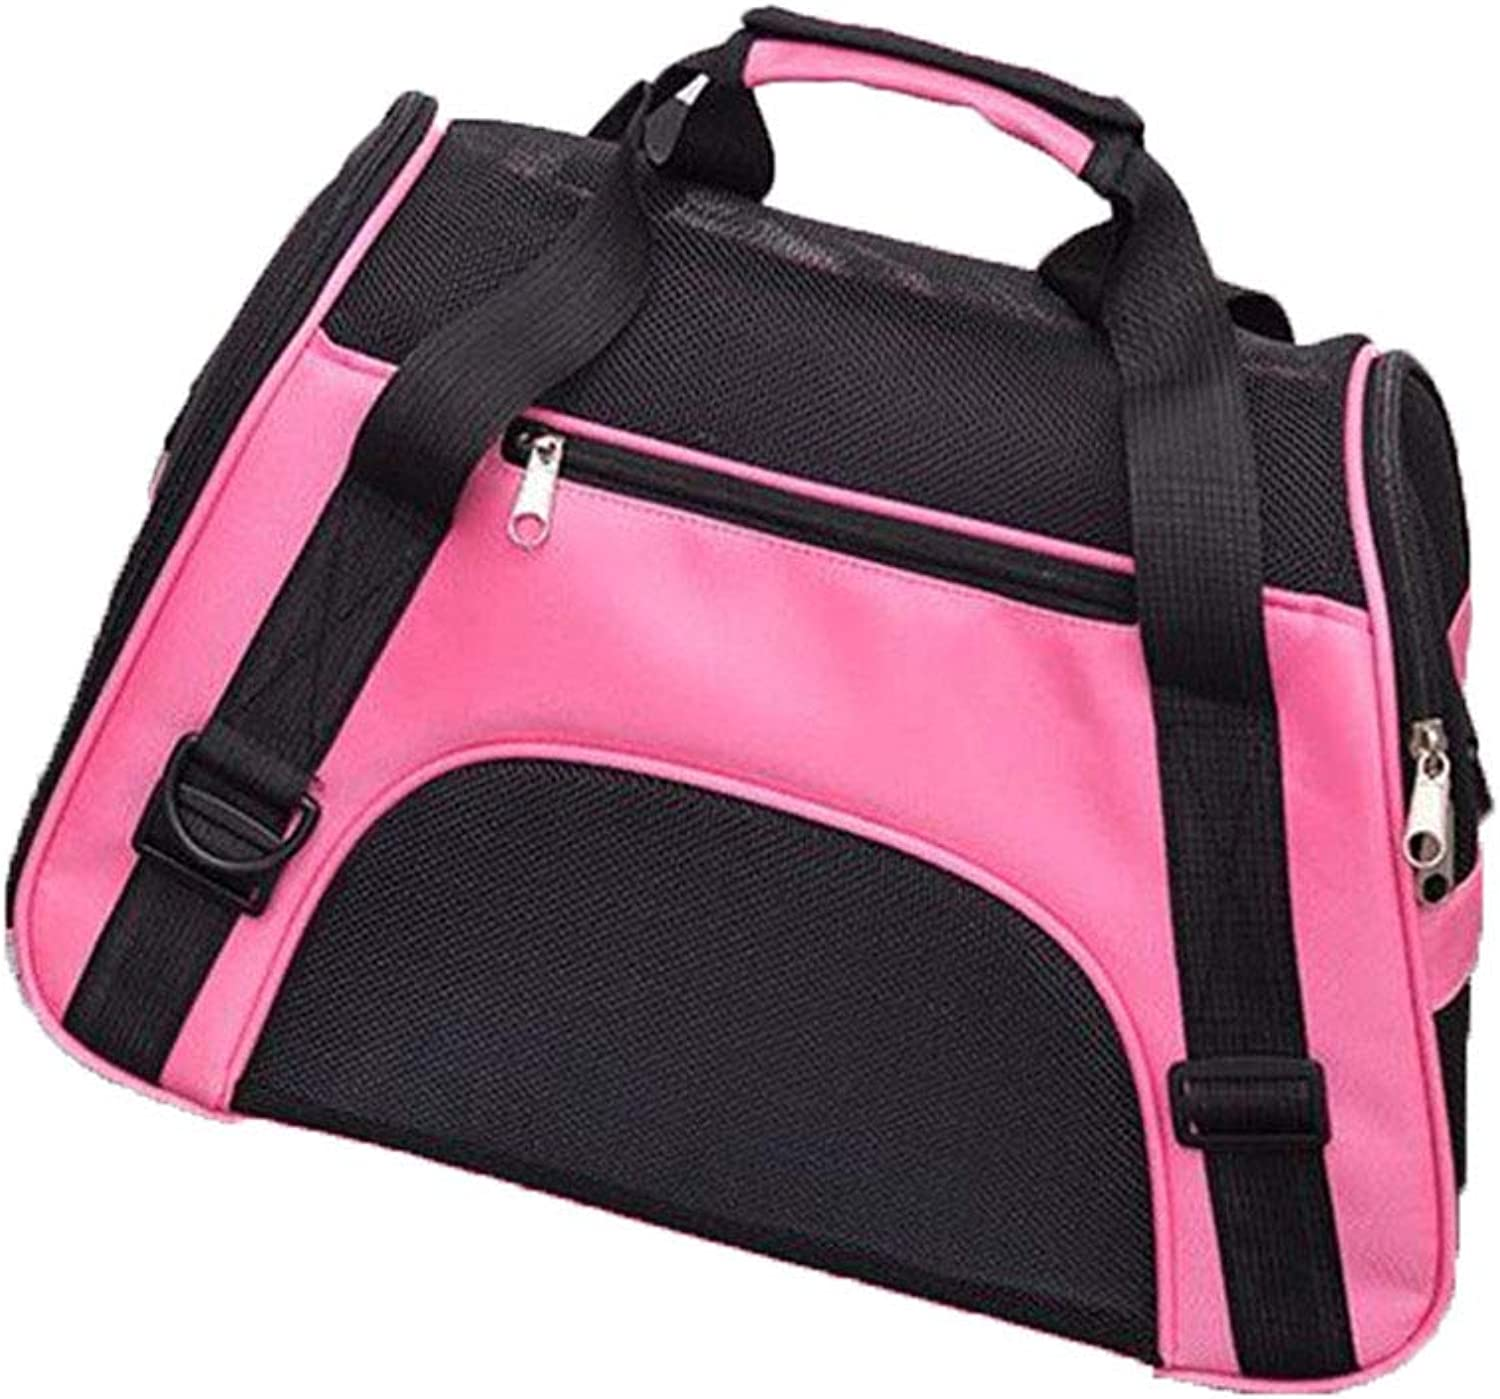 Pet Backpack Messenger Carrier Bags Cat Dog Carrier Outgoing Travel Packets Breathable Pet Handbag pink 53x26x36cm